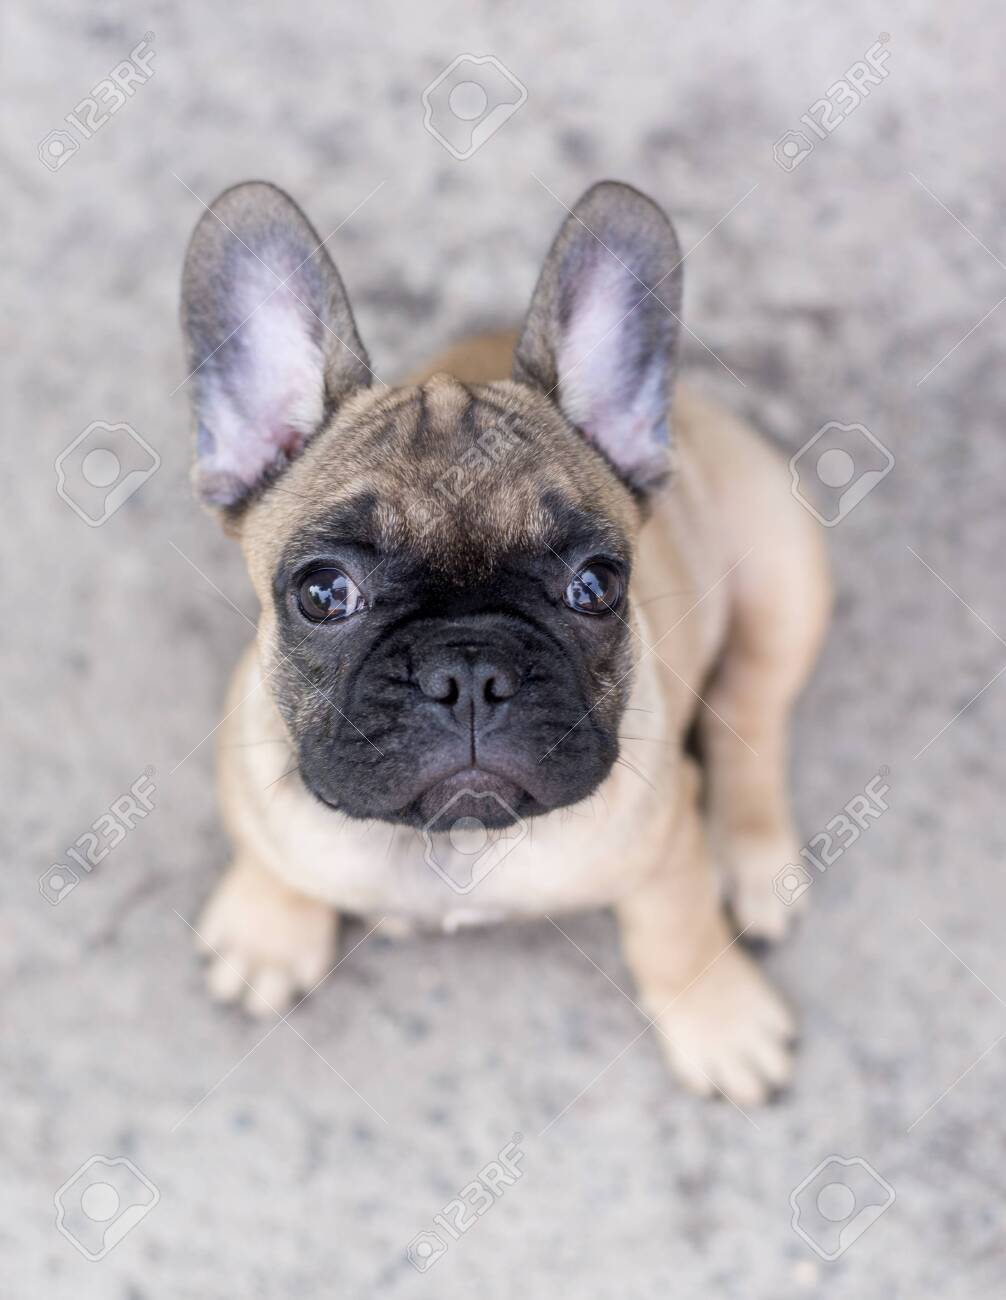 Adorable French Bulldog Puppy Beige Color Portrait Of Cute Little Stock Photo Picture And Royalty Free Image Image 153358795